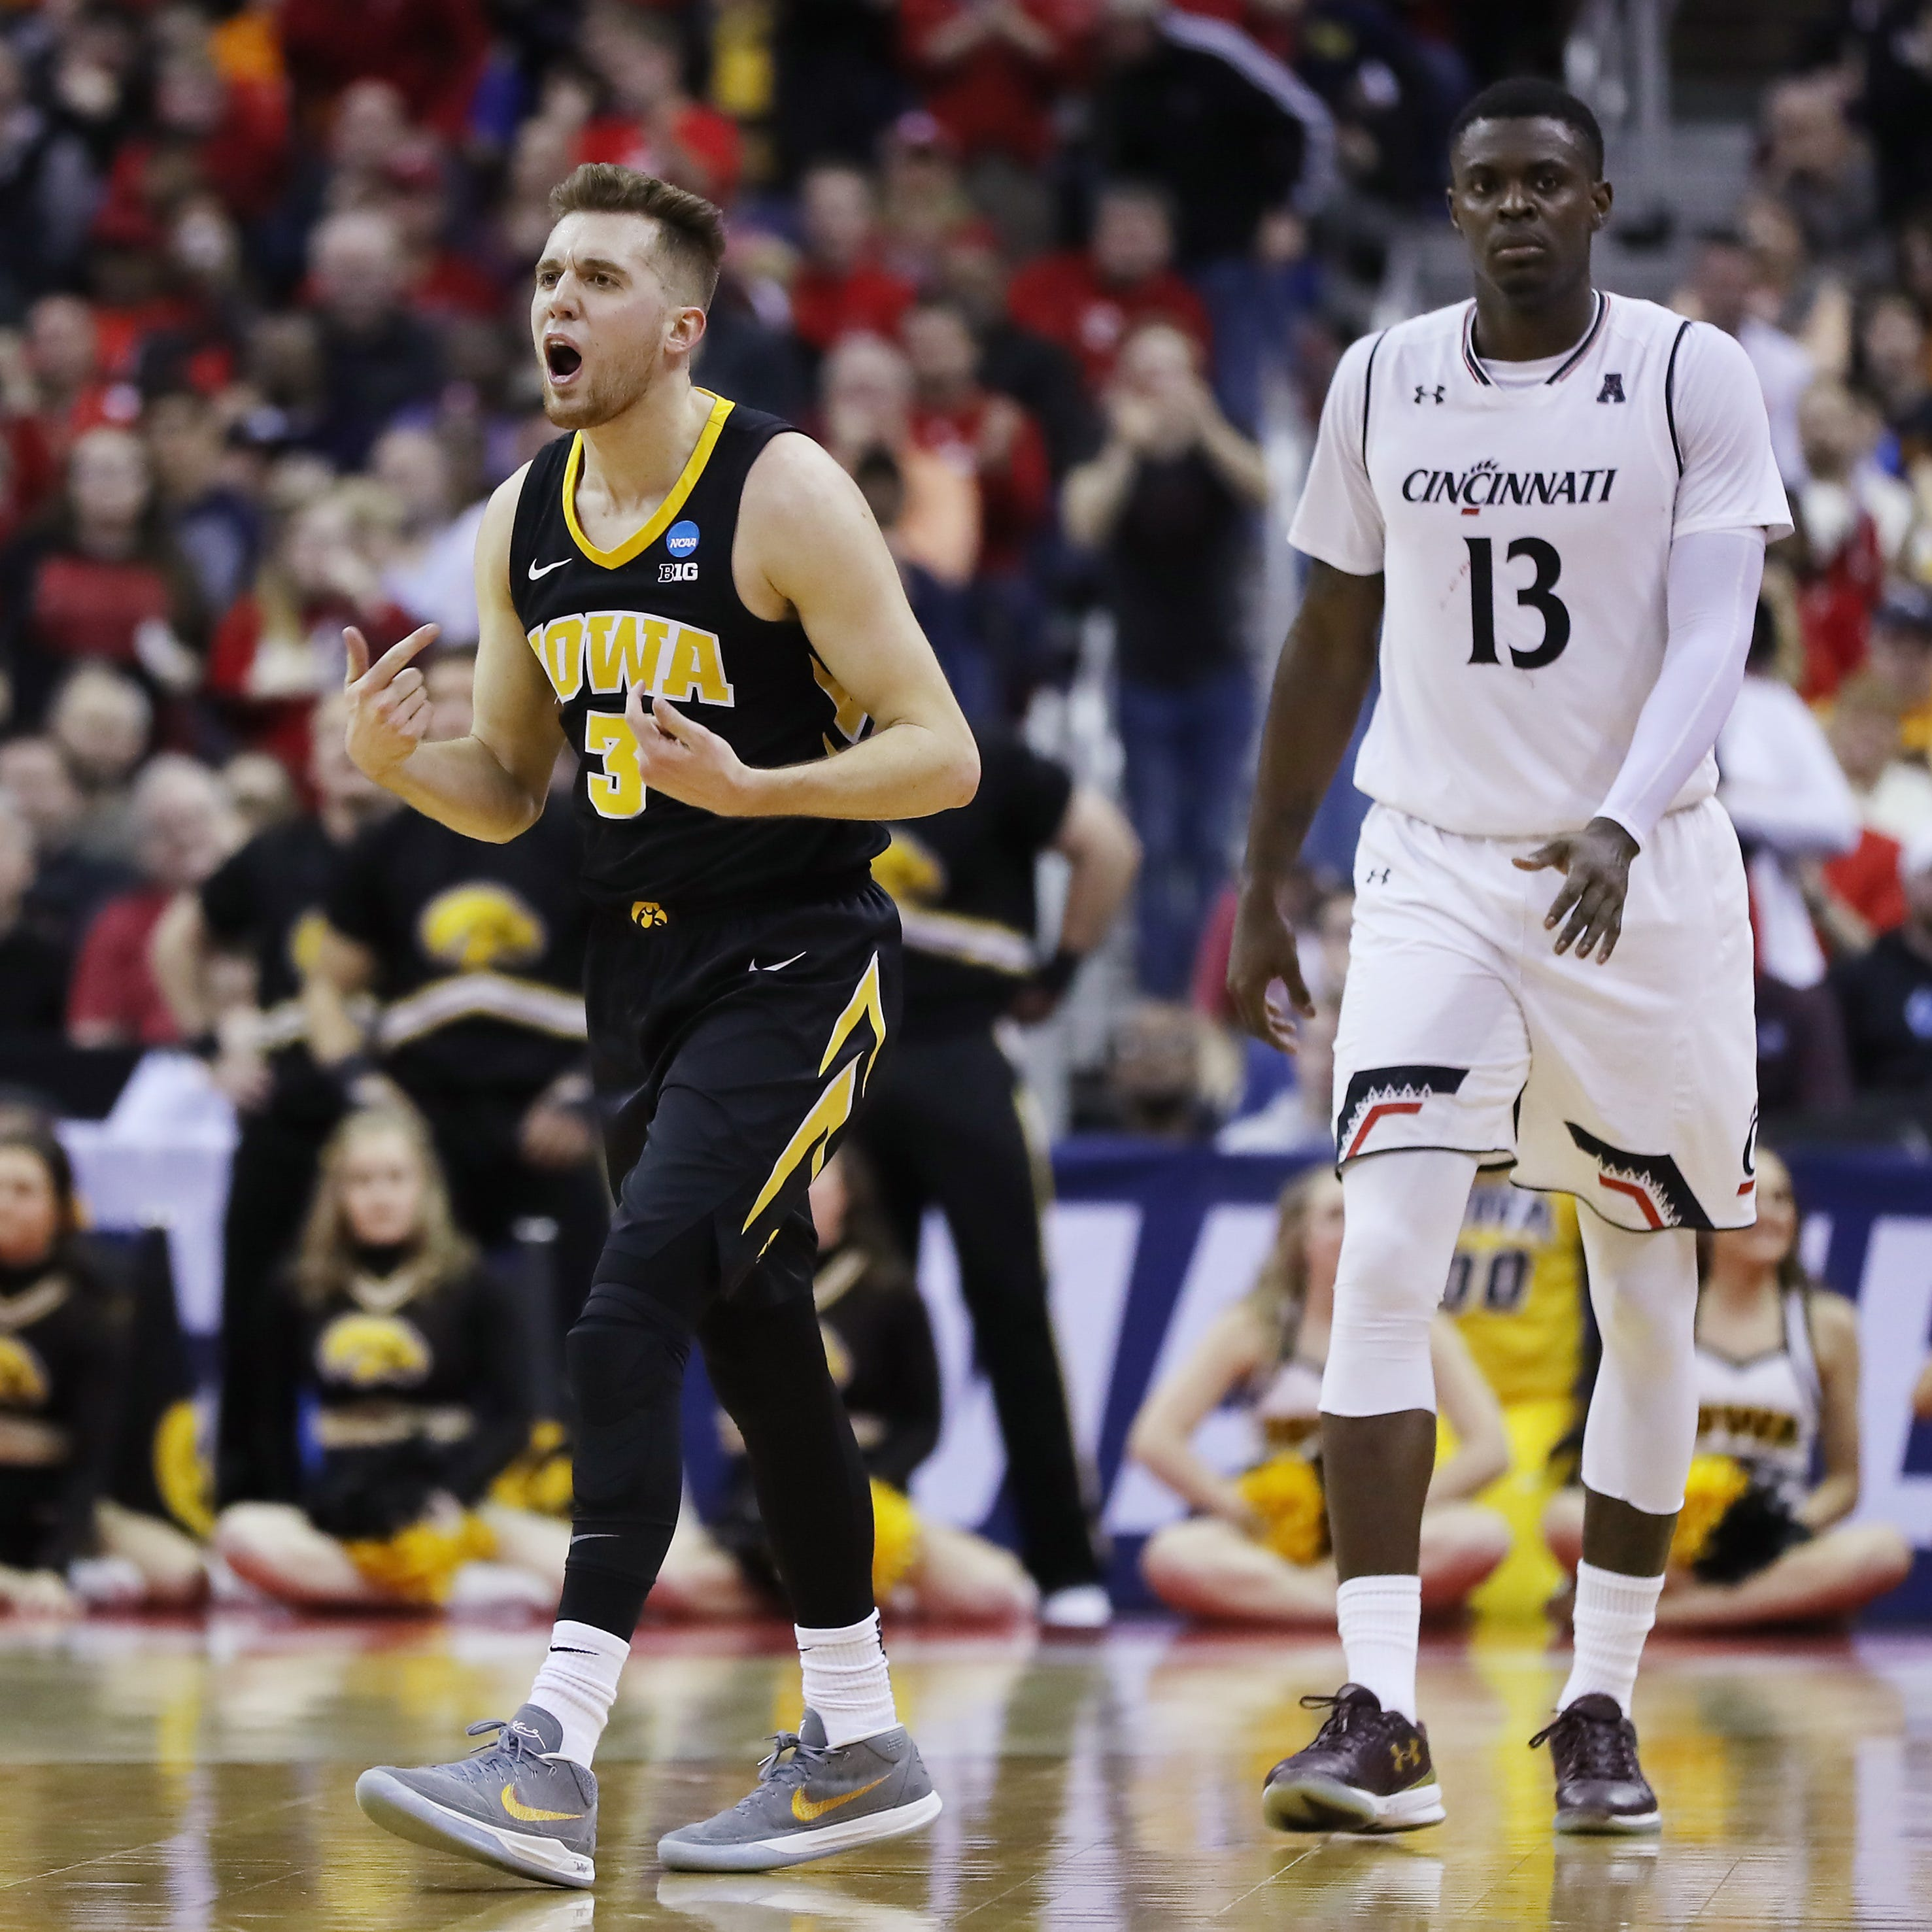 Leistikow: Hawkeyes' big win on NCAA stage was a year in the making